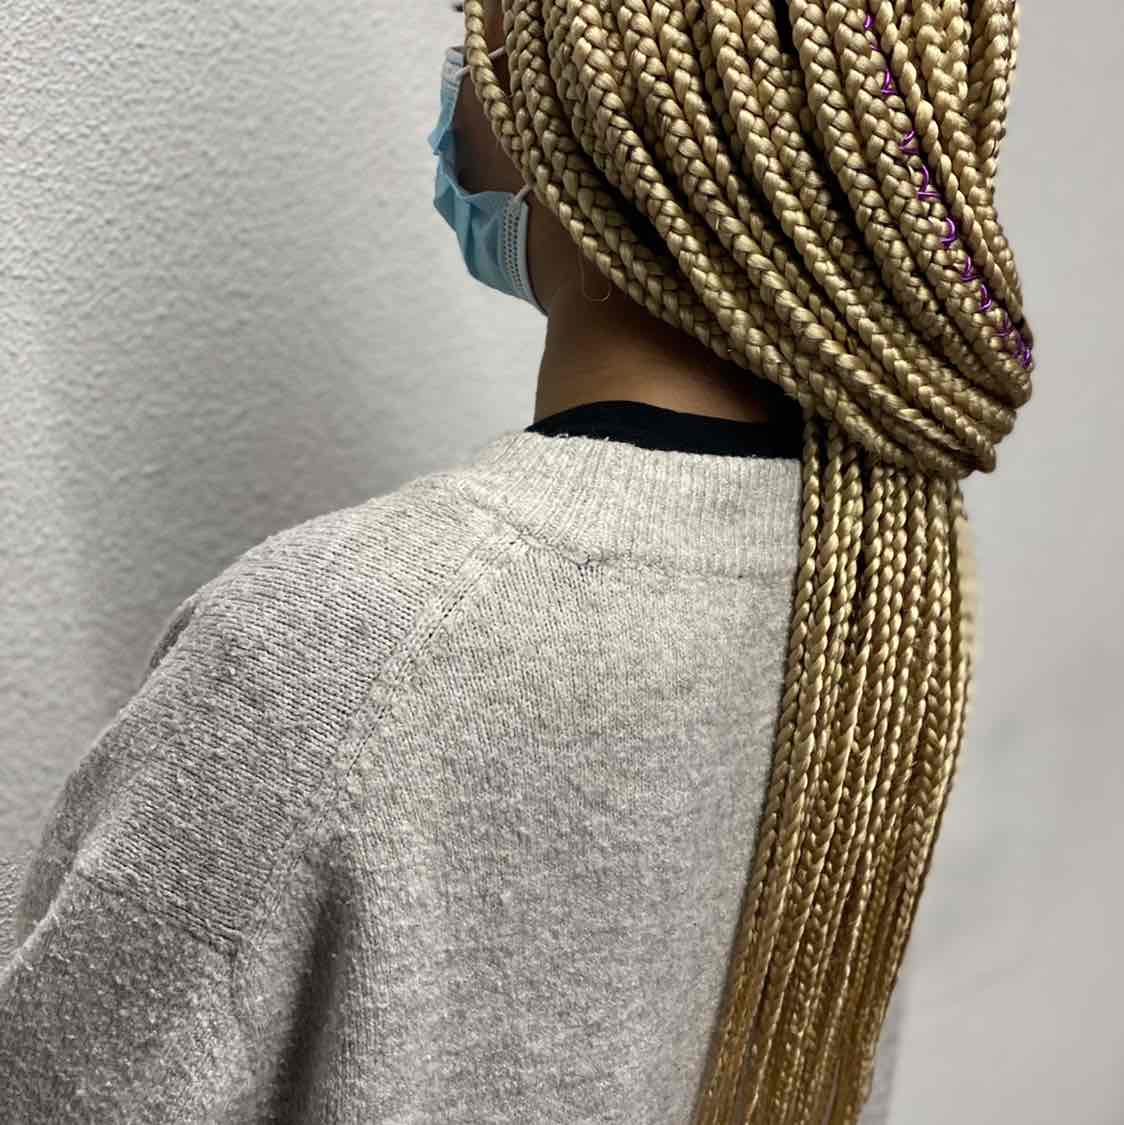 salon de coiffure afro tresse tresses box braids crochet braids vanilles tissages paris 75 77 78 91 92 93 94 95 UPOJLOLR